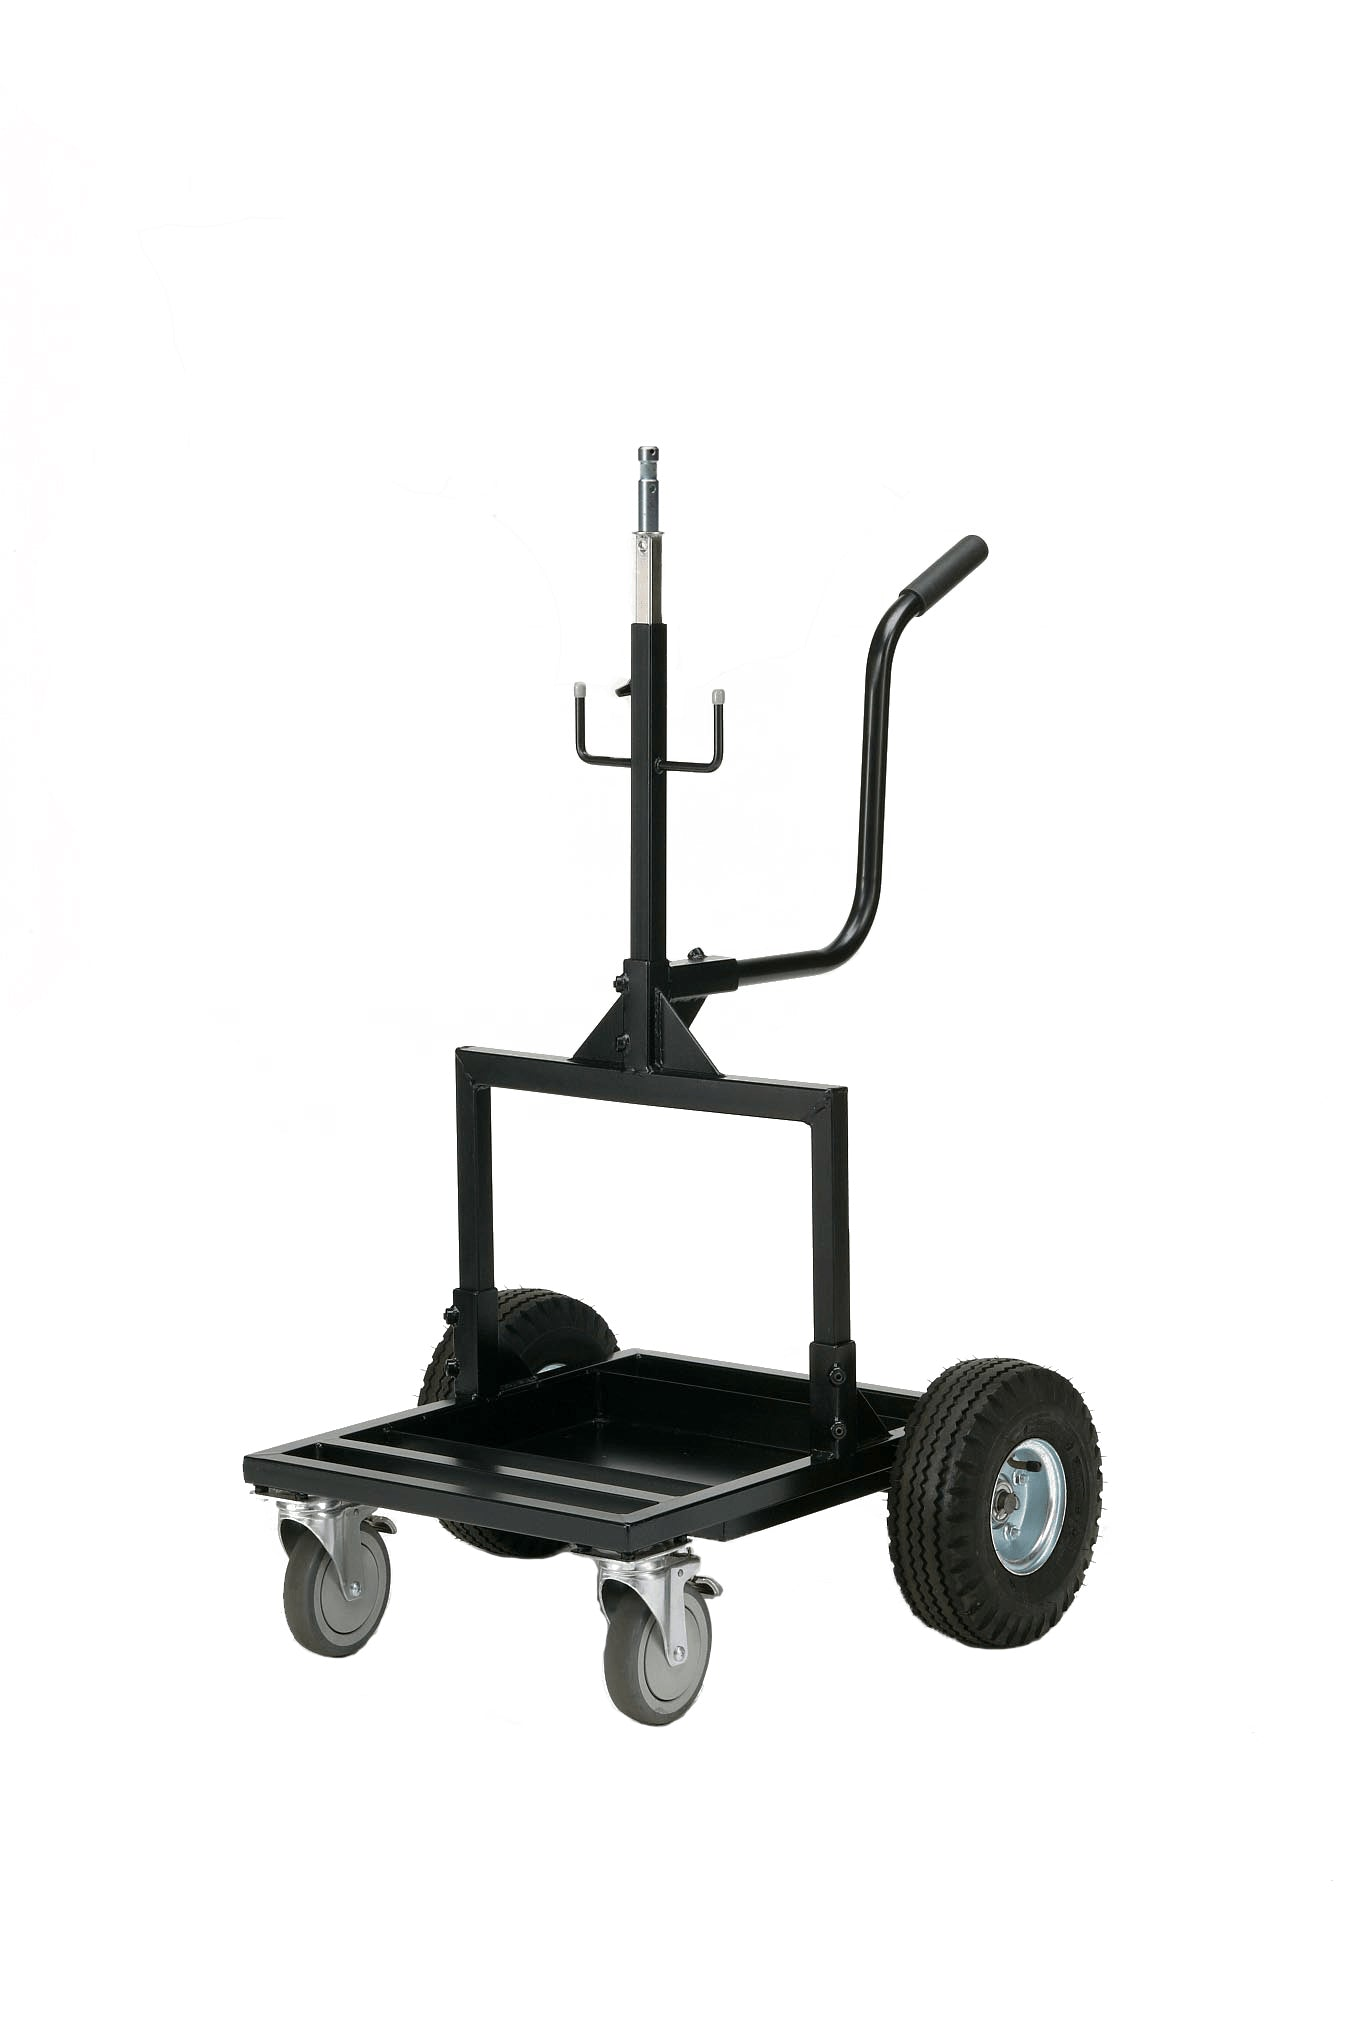 Backstage - Monitor Mover Cart